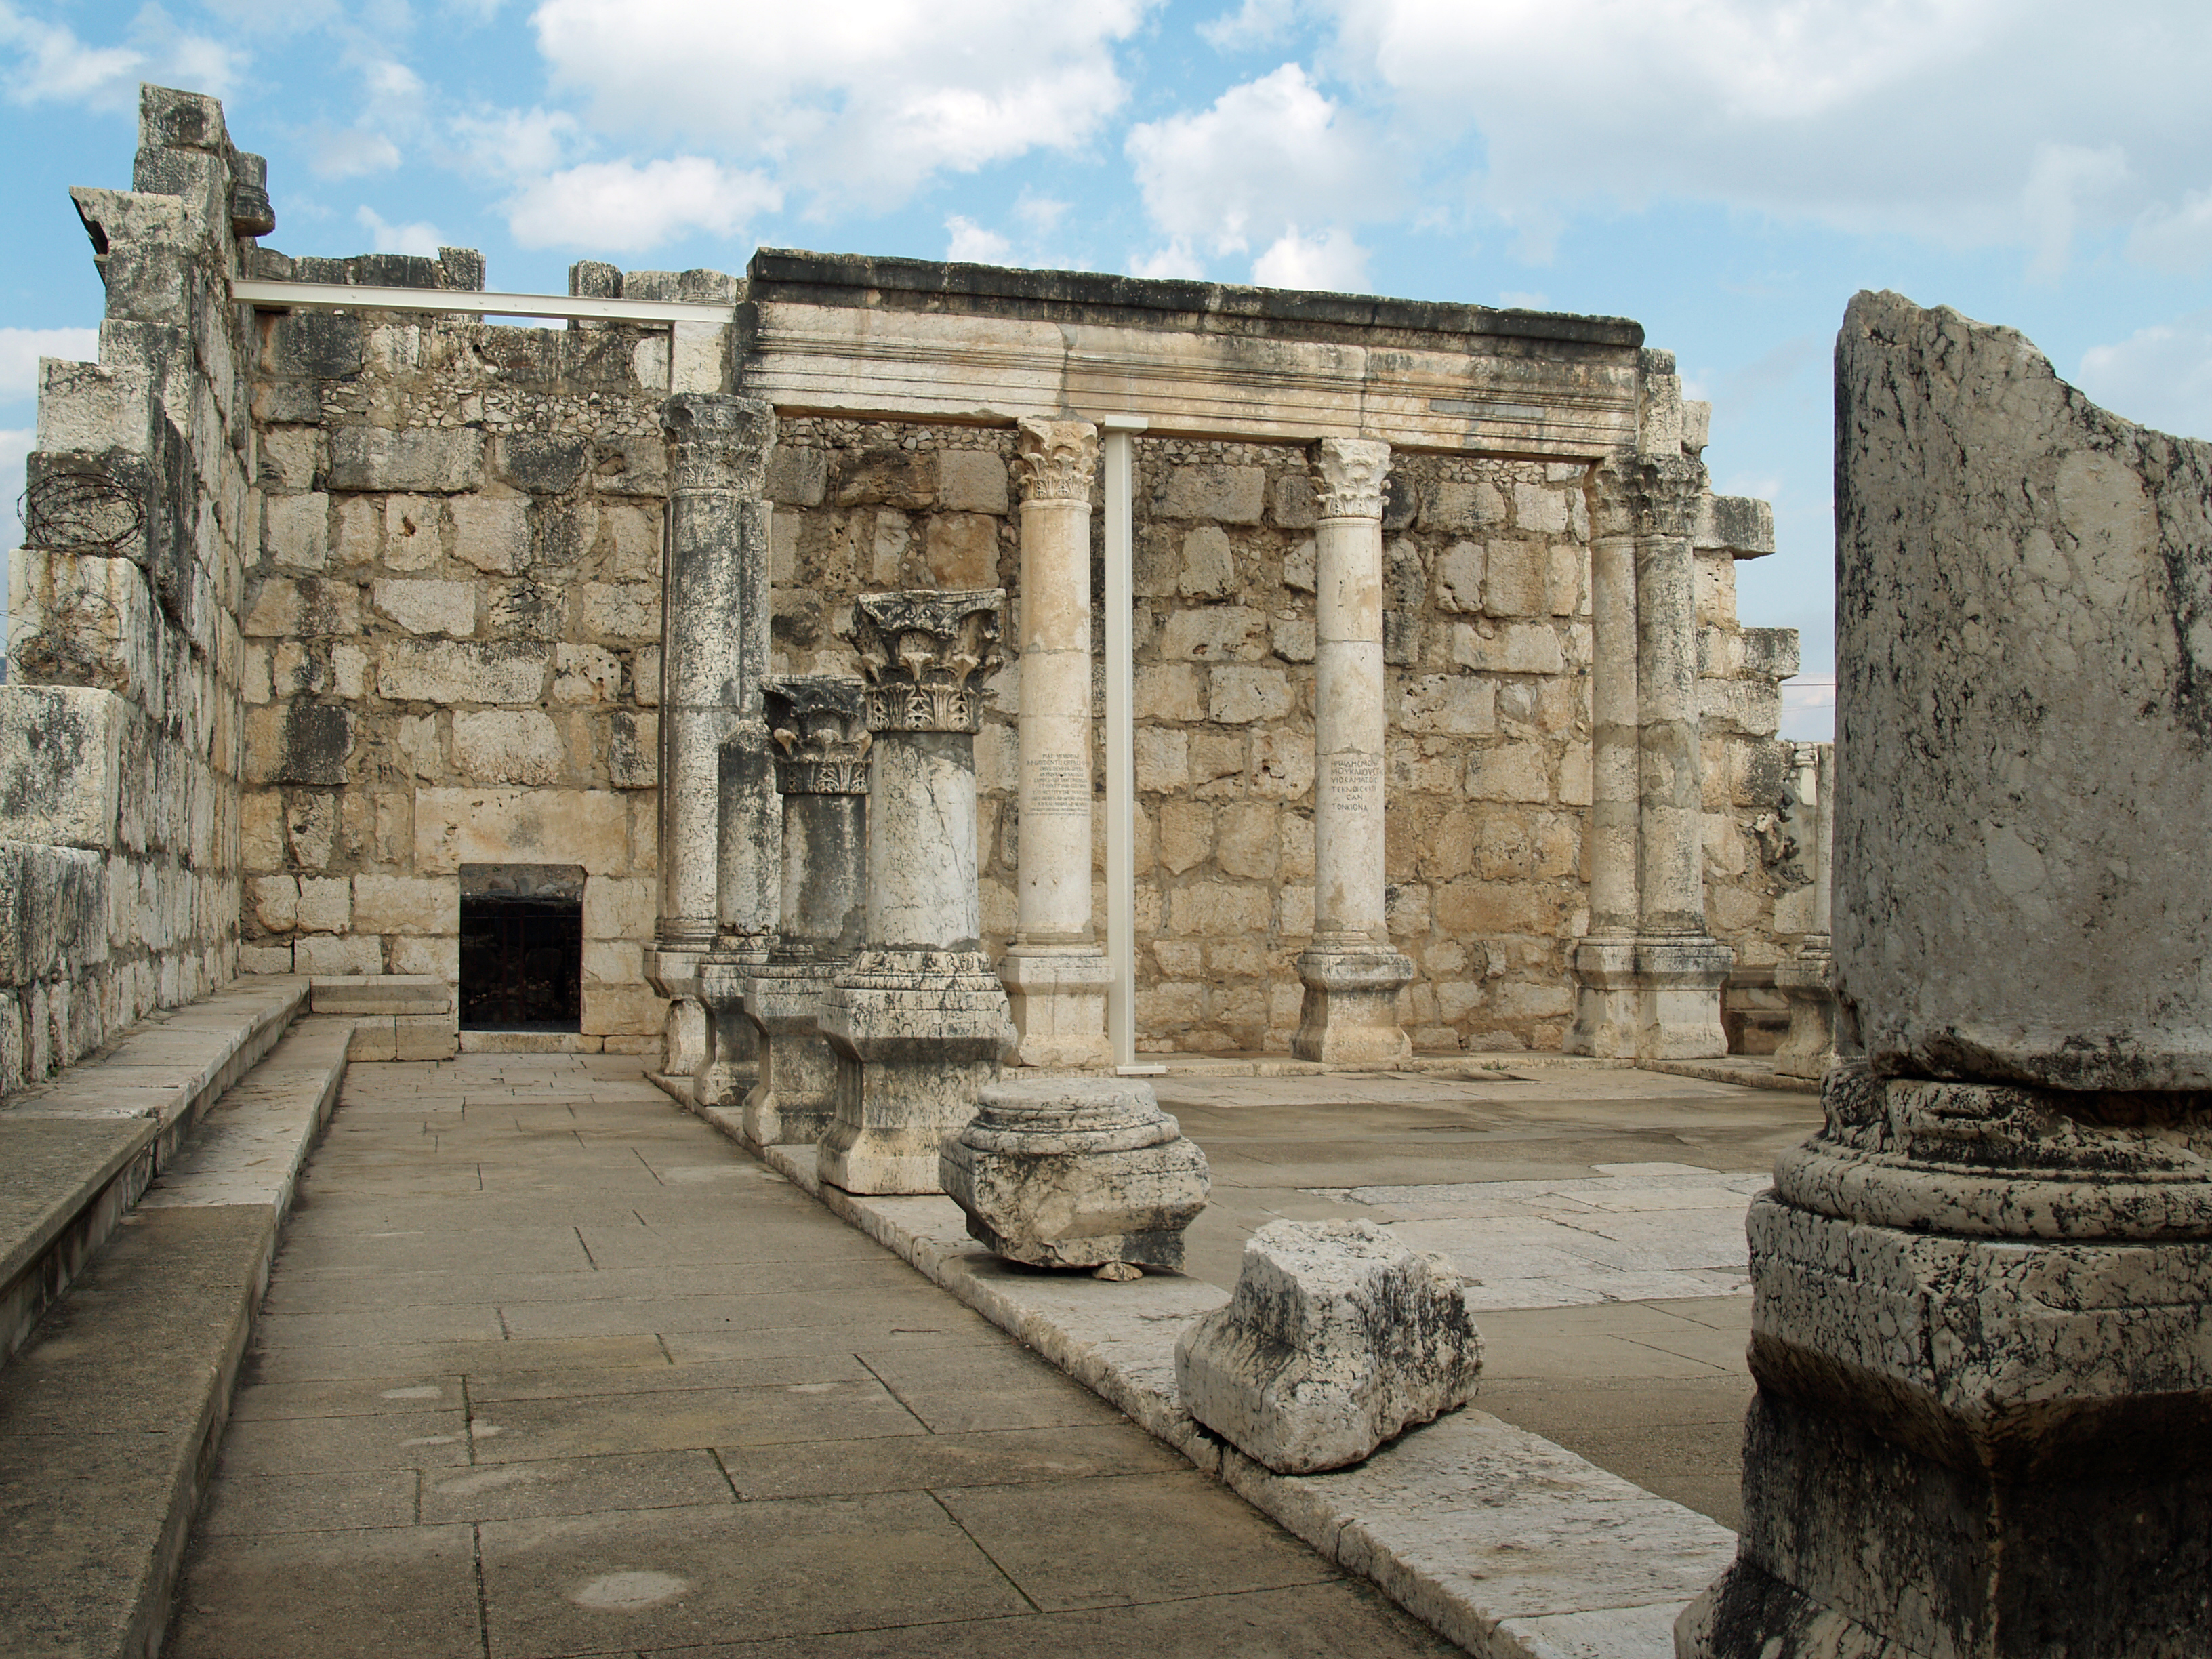 Ruins of the synagogue in Capernaum.